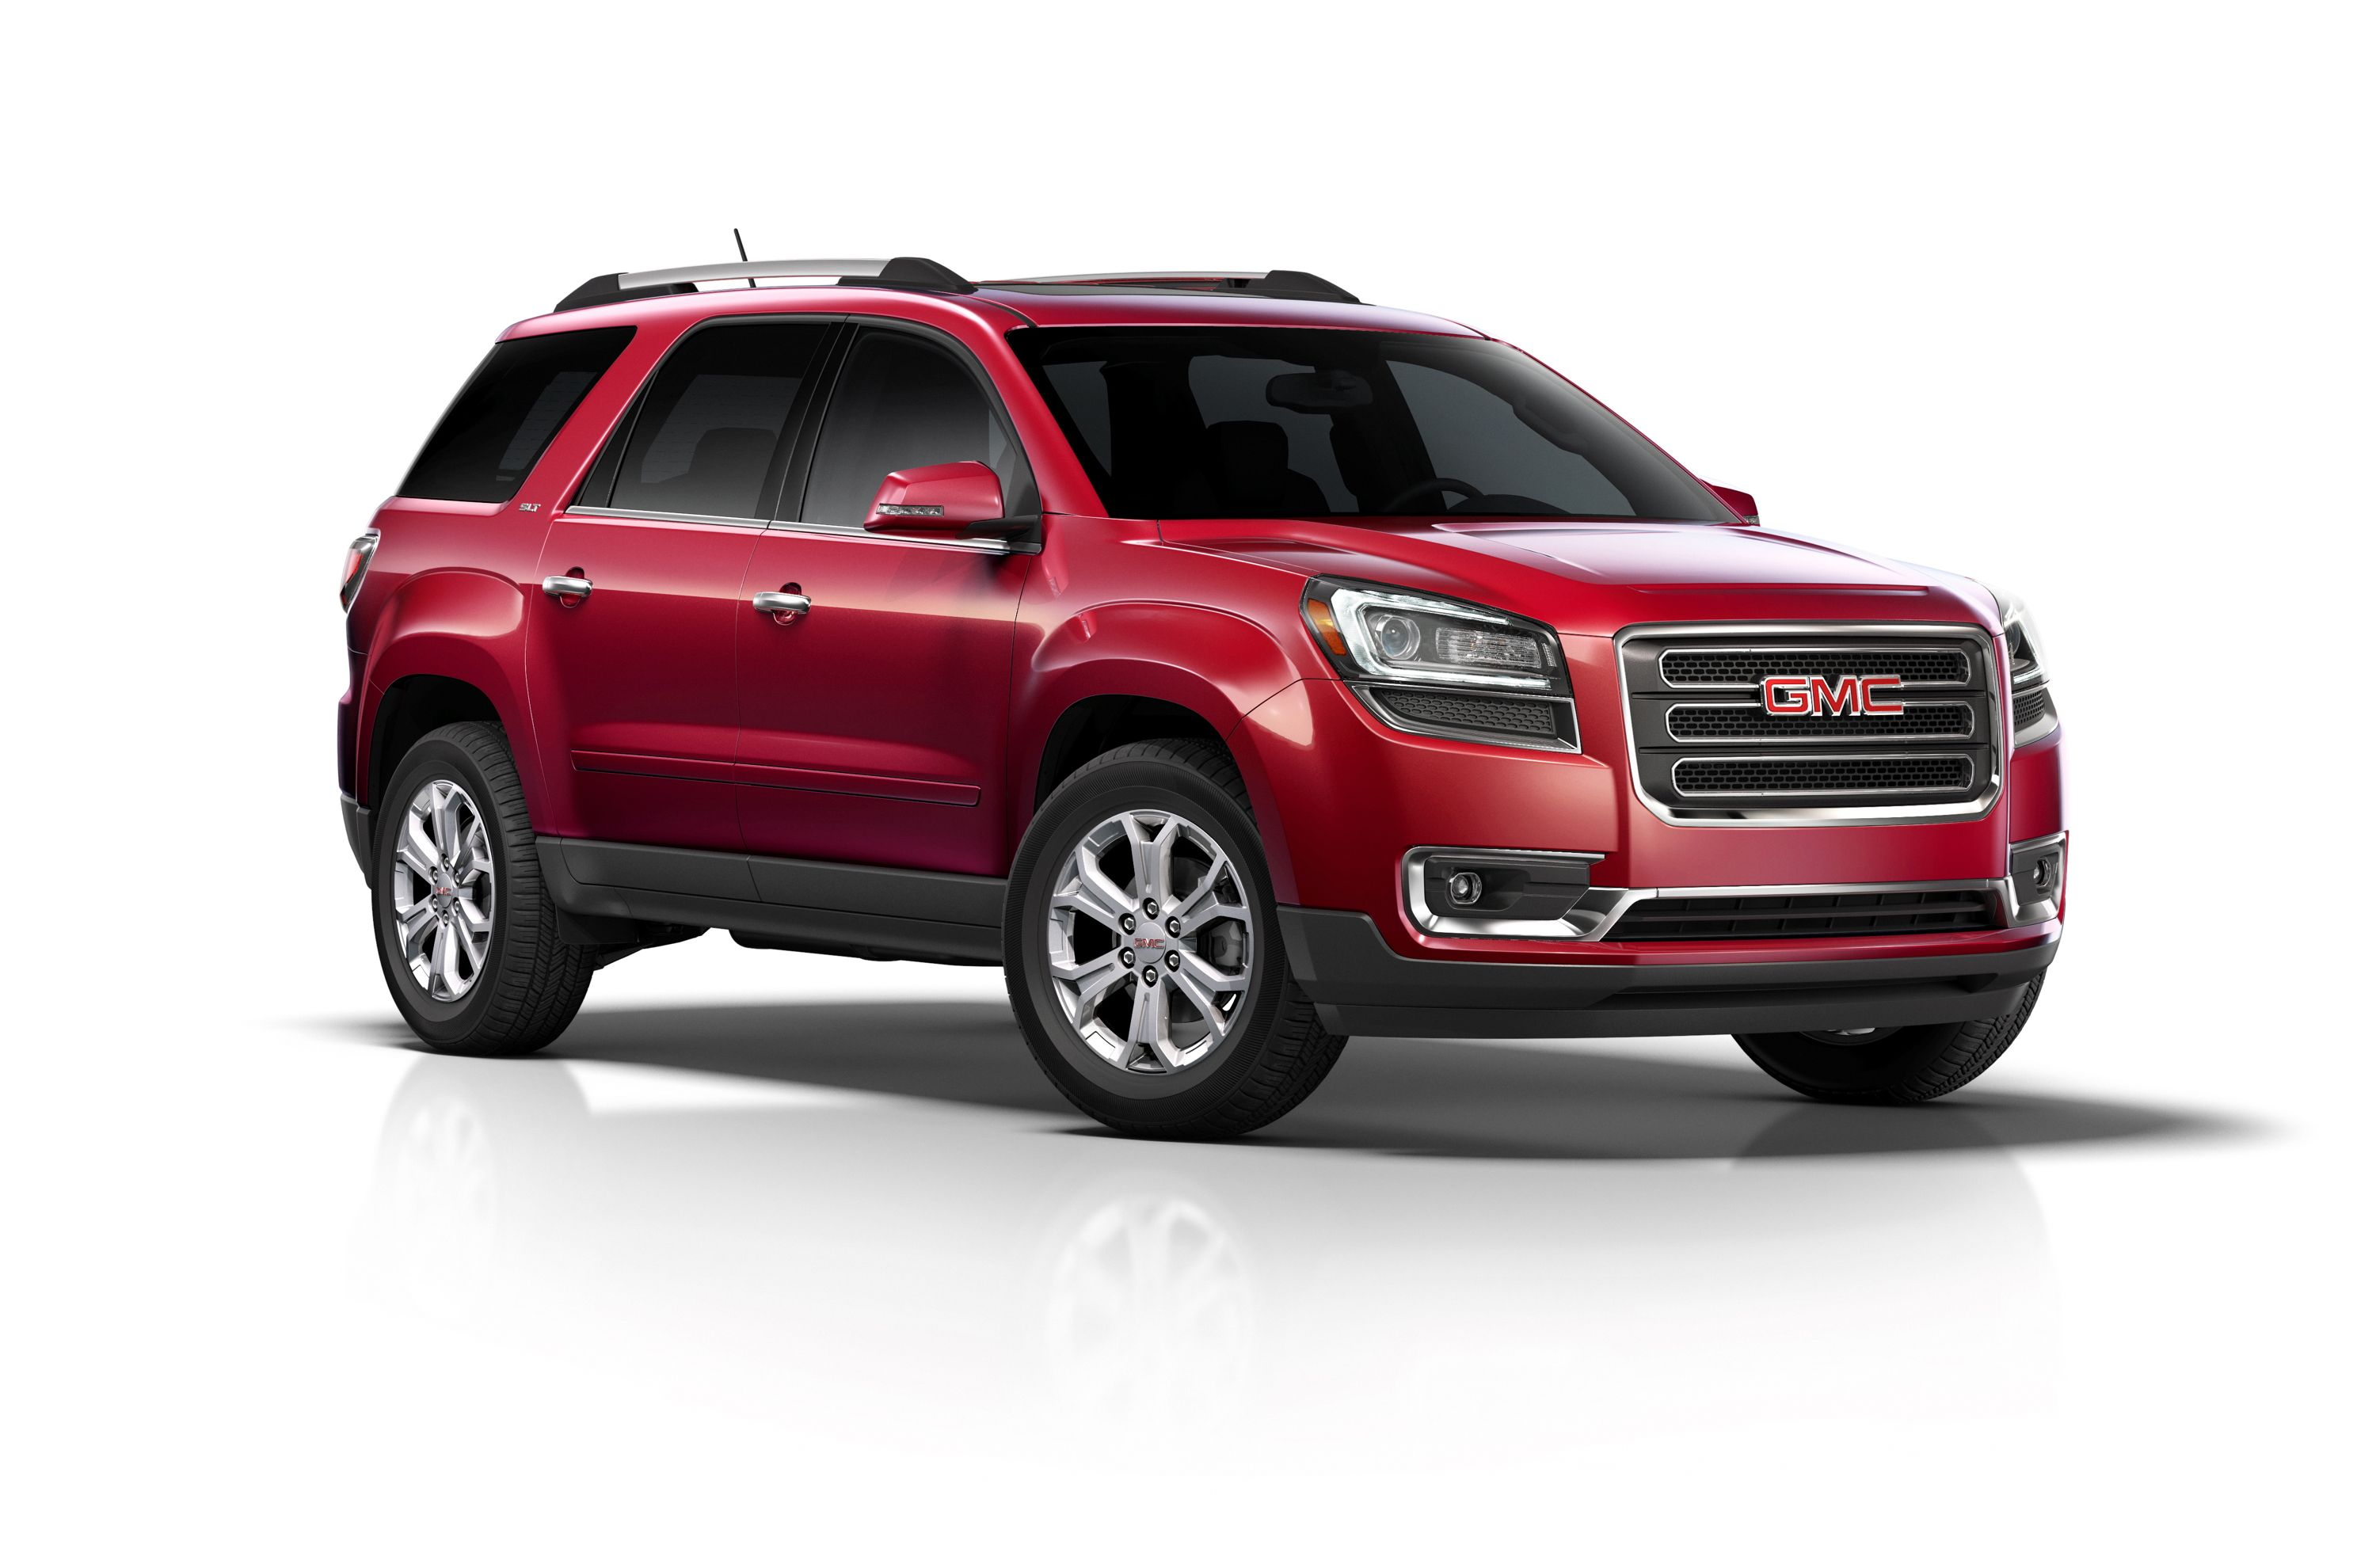 2014 Gmc Acadia Slt 3 4 Front In Red Acadia Car Gmc Buick Gmc